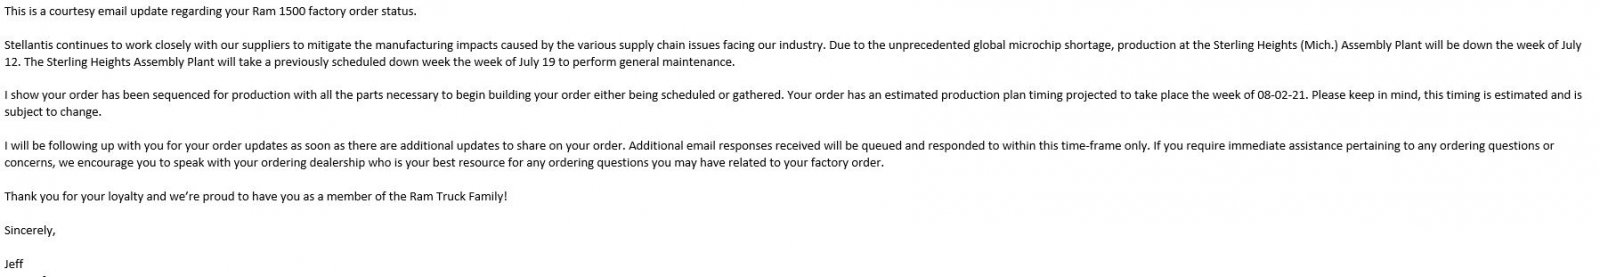 Email from Jeff at RAM confirming D1 for week of 08022021.JPG